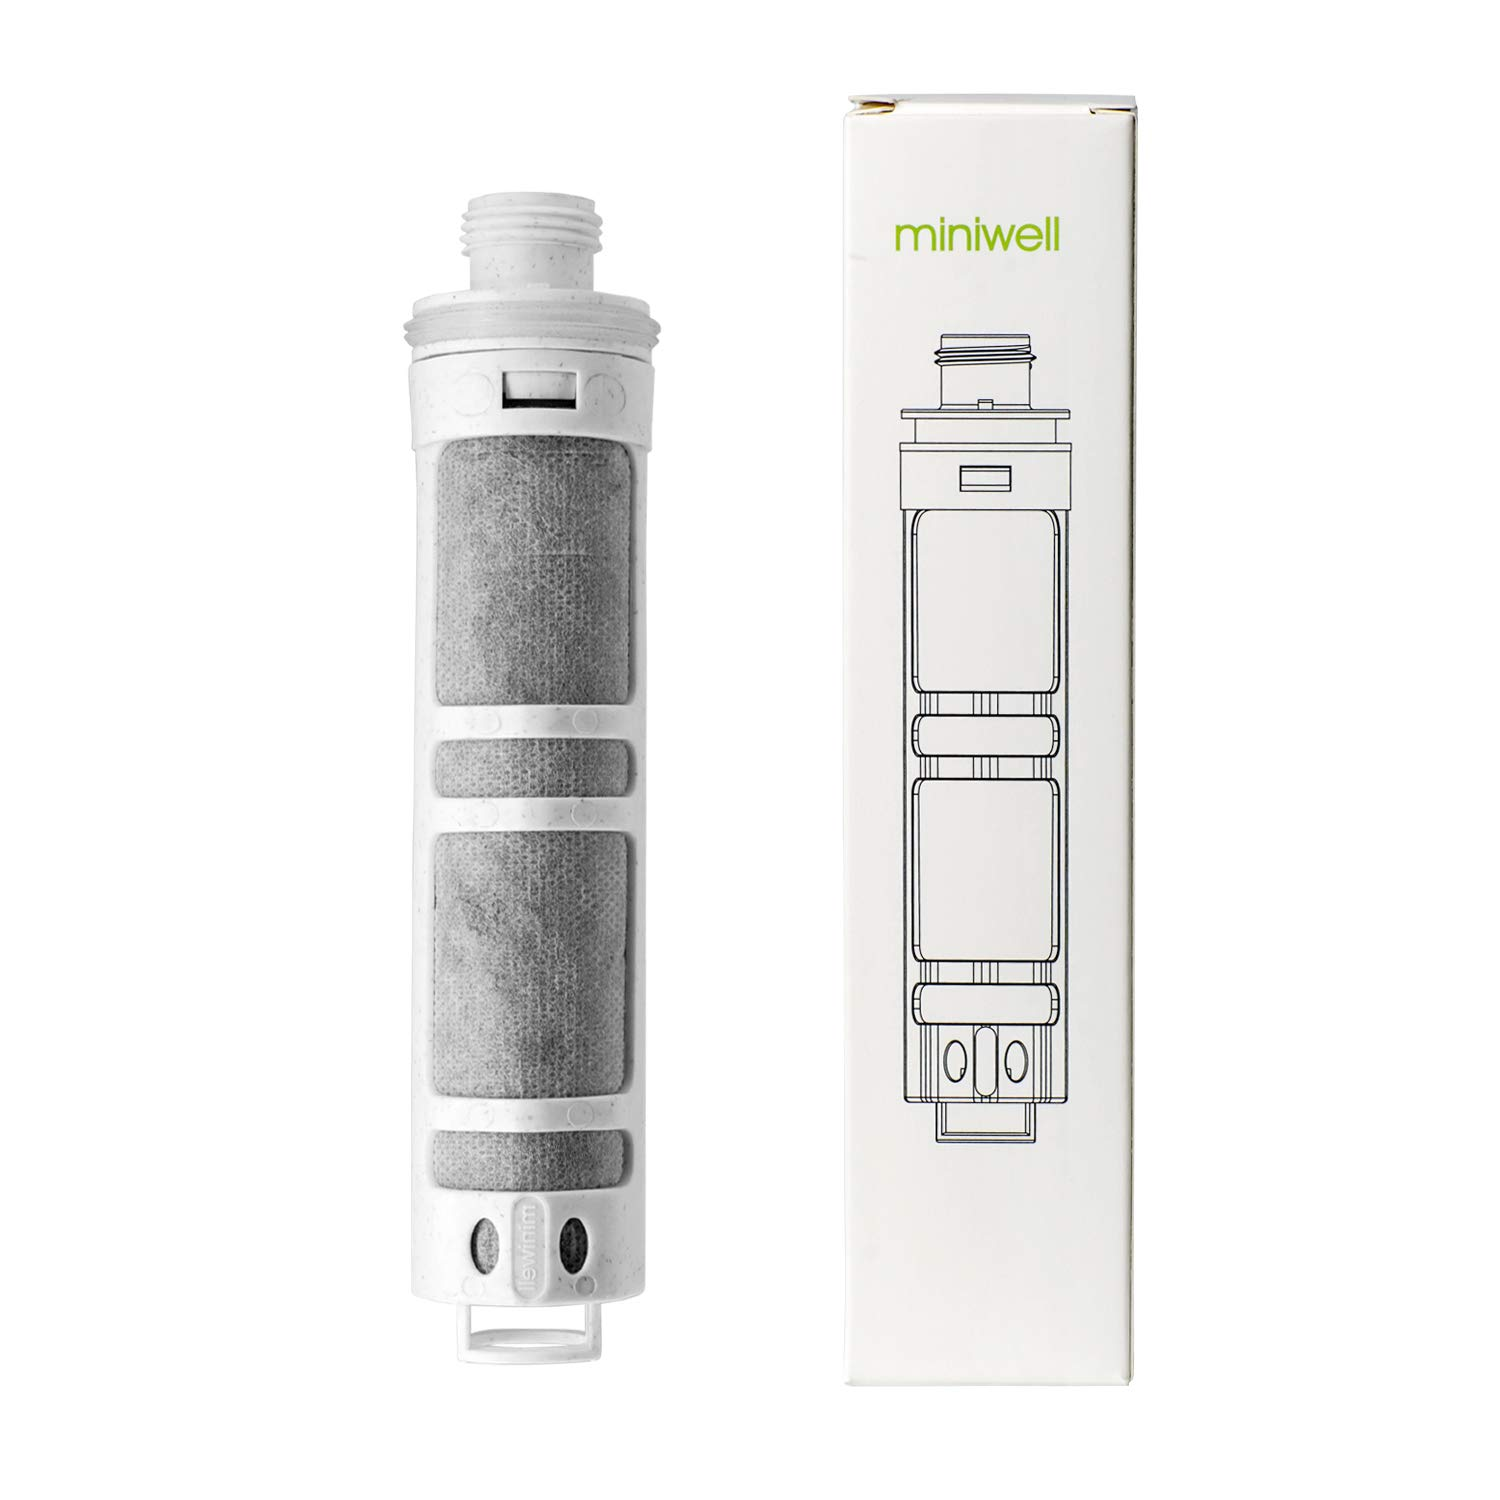 miniwell Filtered Shower Head Water Filter L750 - High output Shower filter- Hand-Held Showerhead- Fluoride & Chlorine Shower Filter – Softens Hard Water – Increases Water Pressure While Saving Water Ltd.